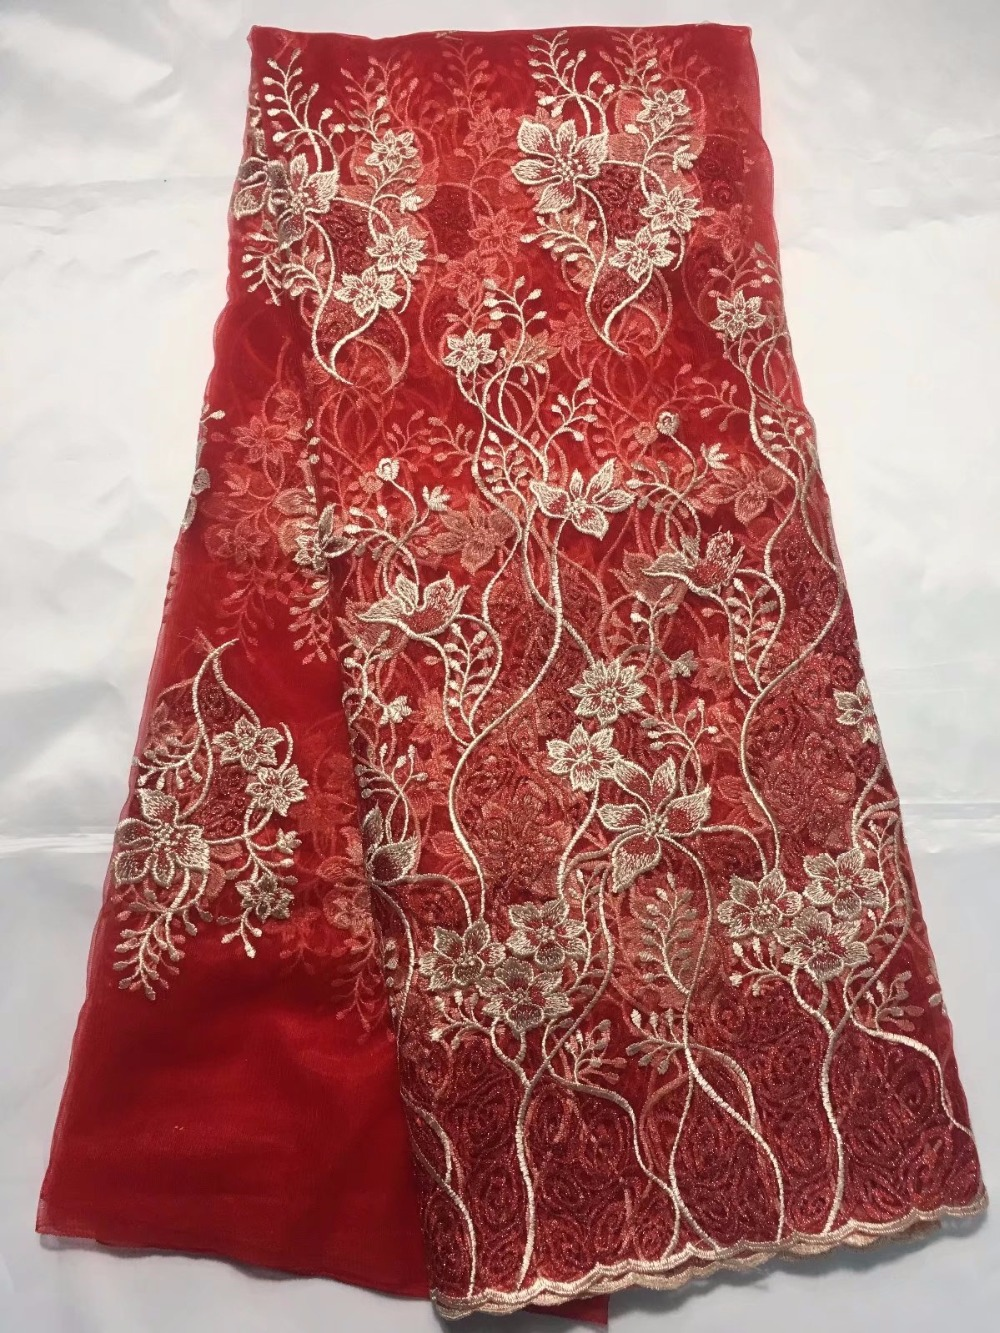 red bridal lace african net fabric 2018 latest nigerian wedding lace high quality wholesale 5yardred bridal lace african net fabric 2018 latest nigerian wedding lace high quality wholesale 5yard